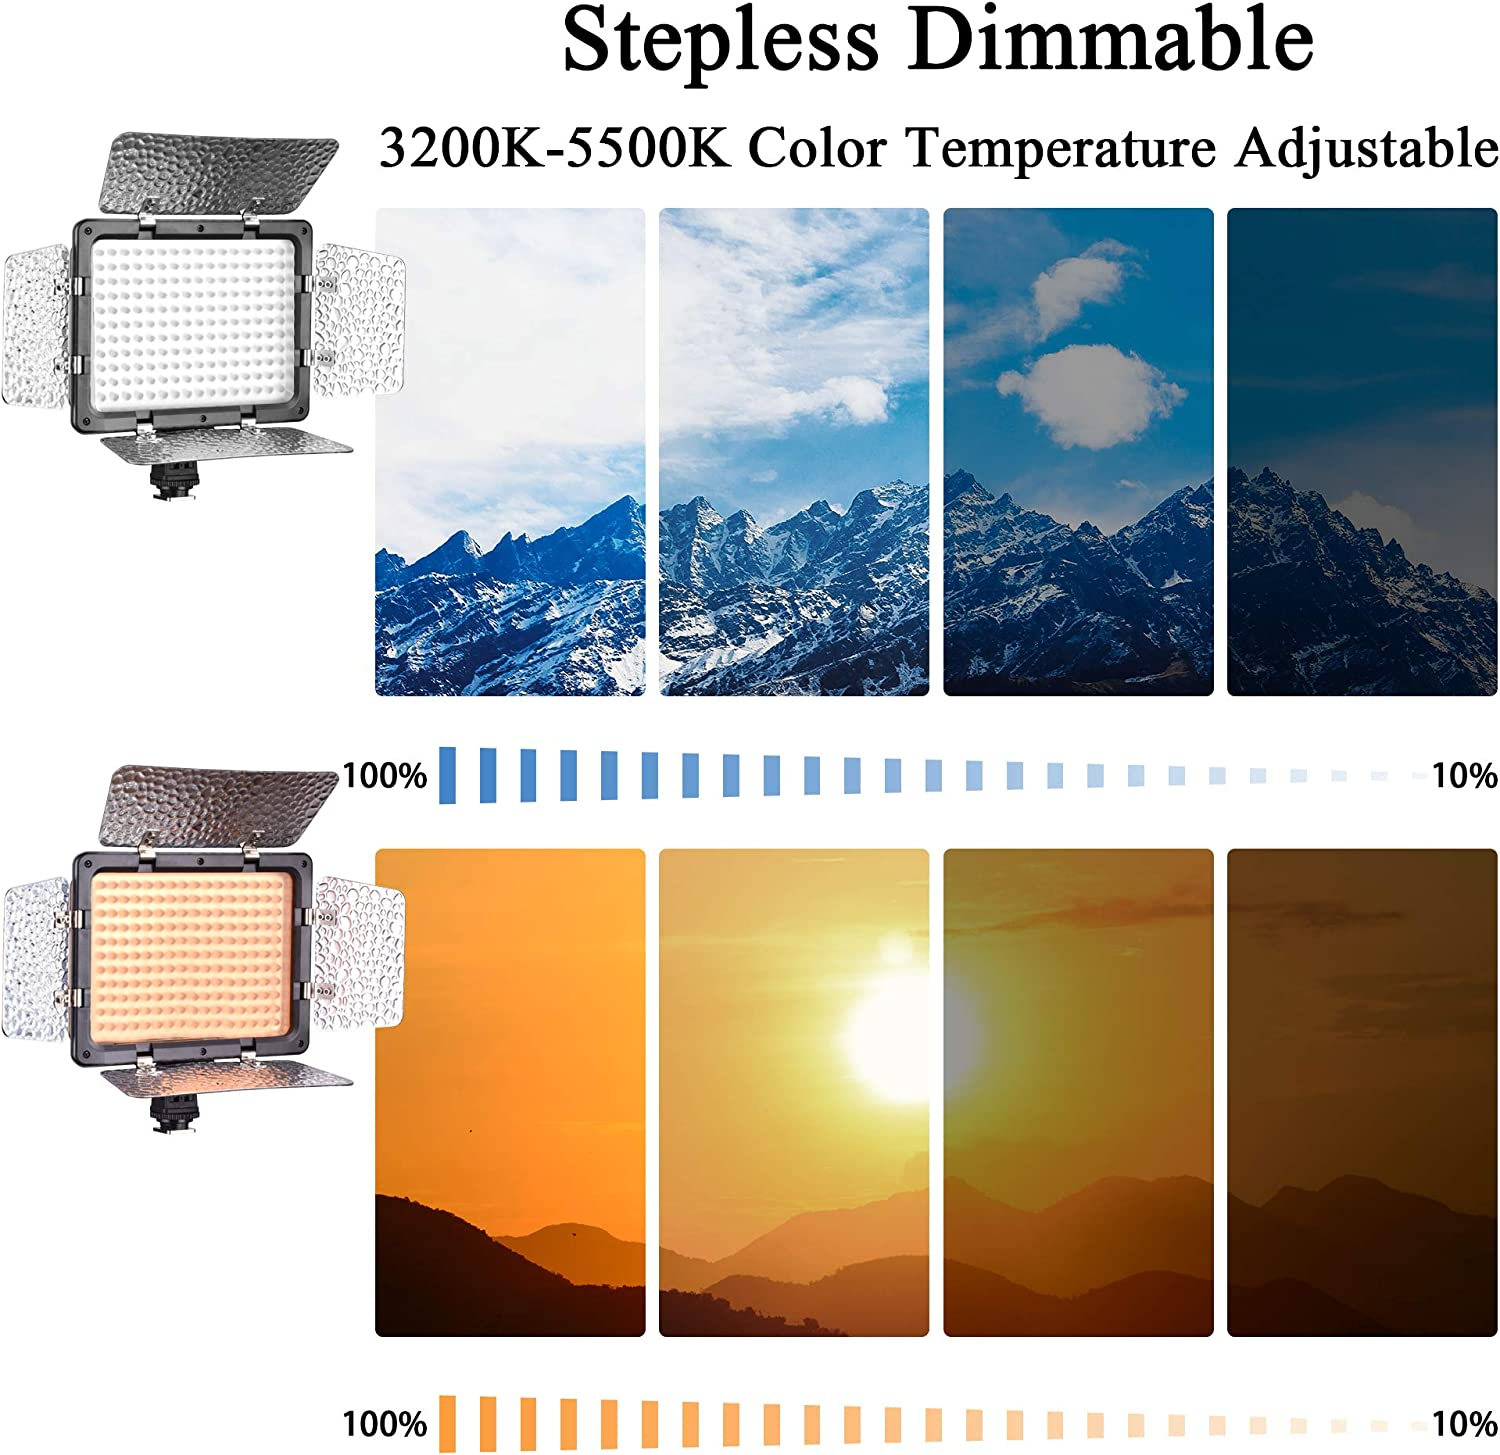 Rechargeable Batteries Dimmable 176 LED Panel Lighting Kit with 4.3 ft Light Stand Carring Bag for YouTube Studio Color Filters Emart LED Photo Video Light 2 Sets